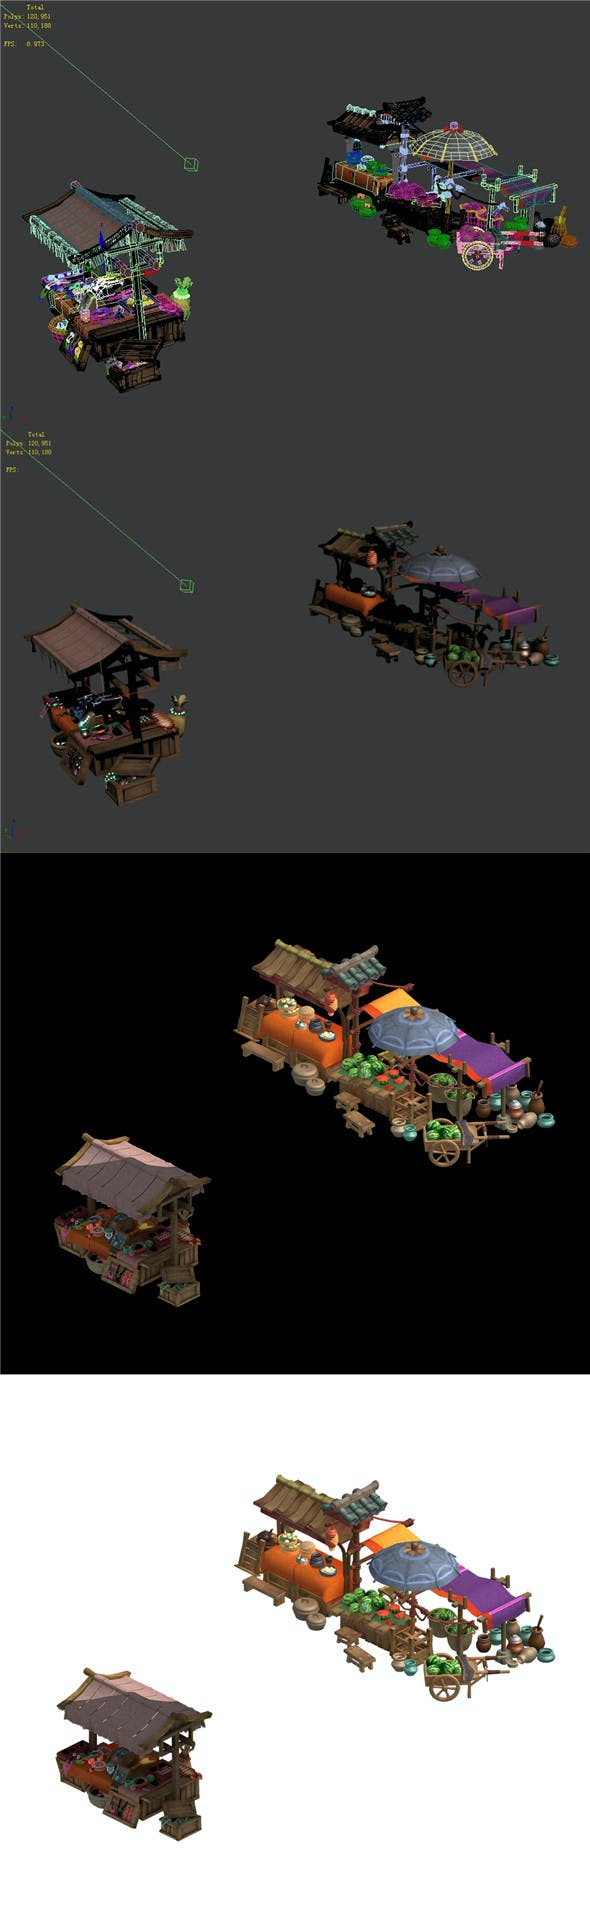 Buns fruit stalls - jewelry stalls - 3DOcean Item for Sale